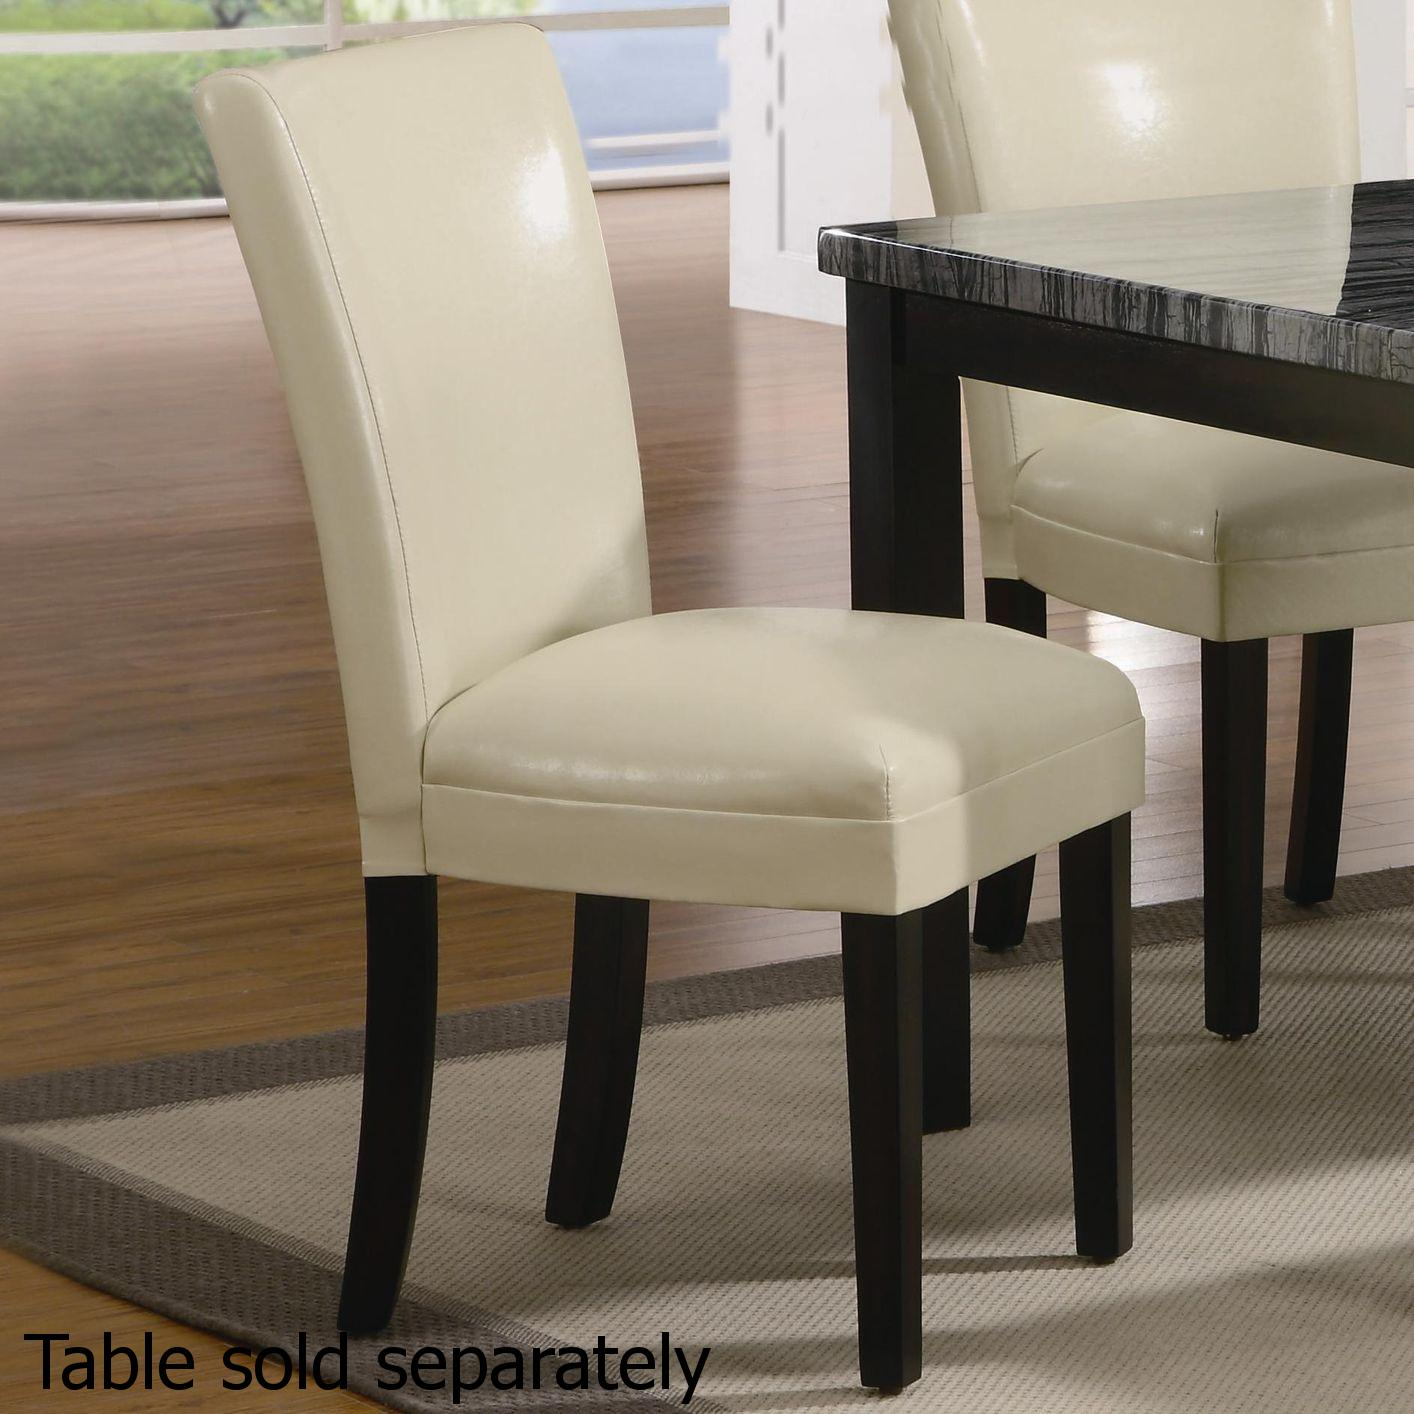 Beige Wood Dining Chair Steal A Sofa Furniture Outlet Los Angeles CA